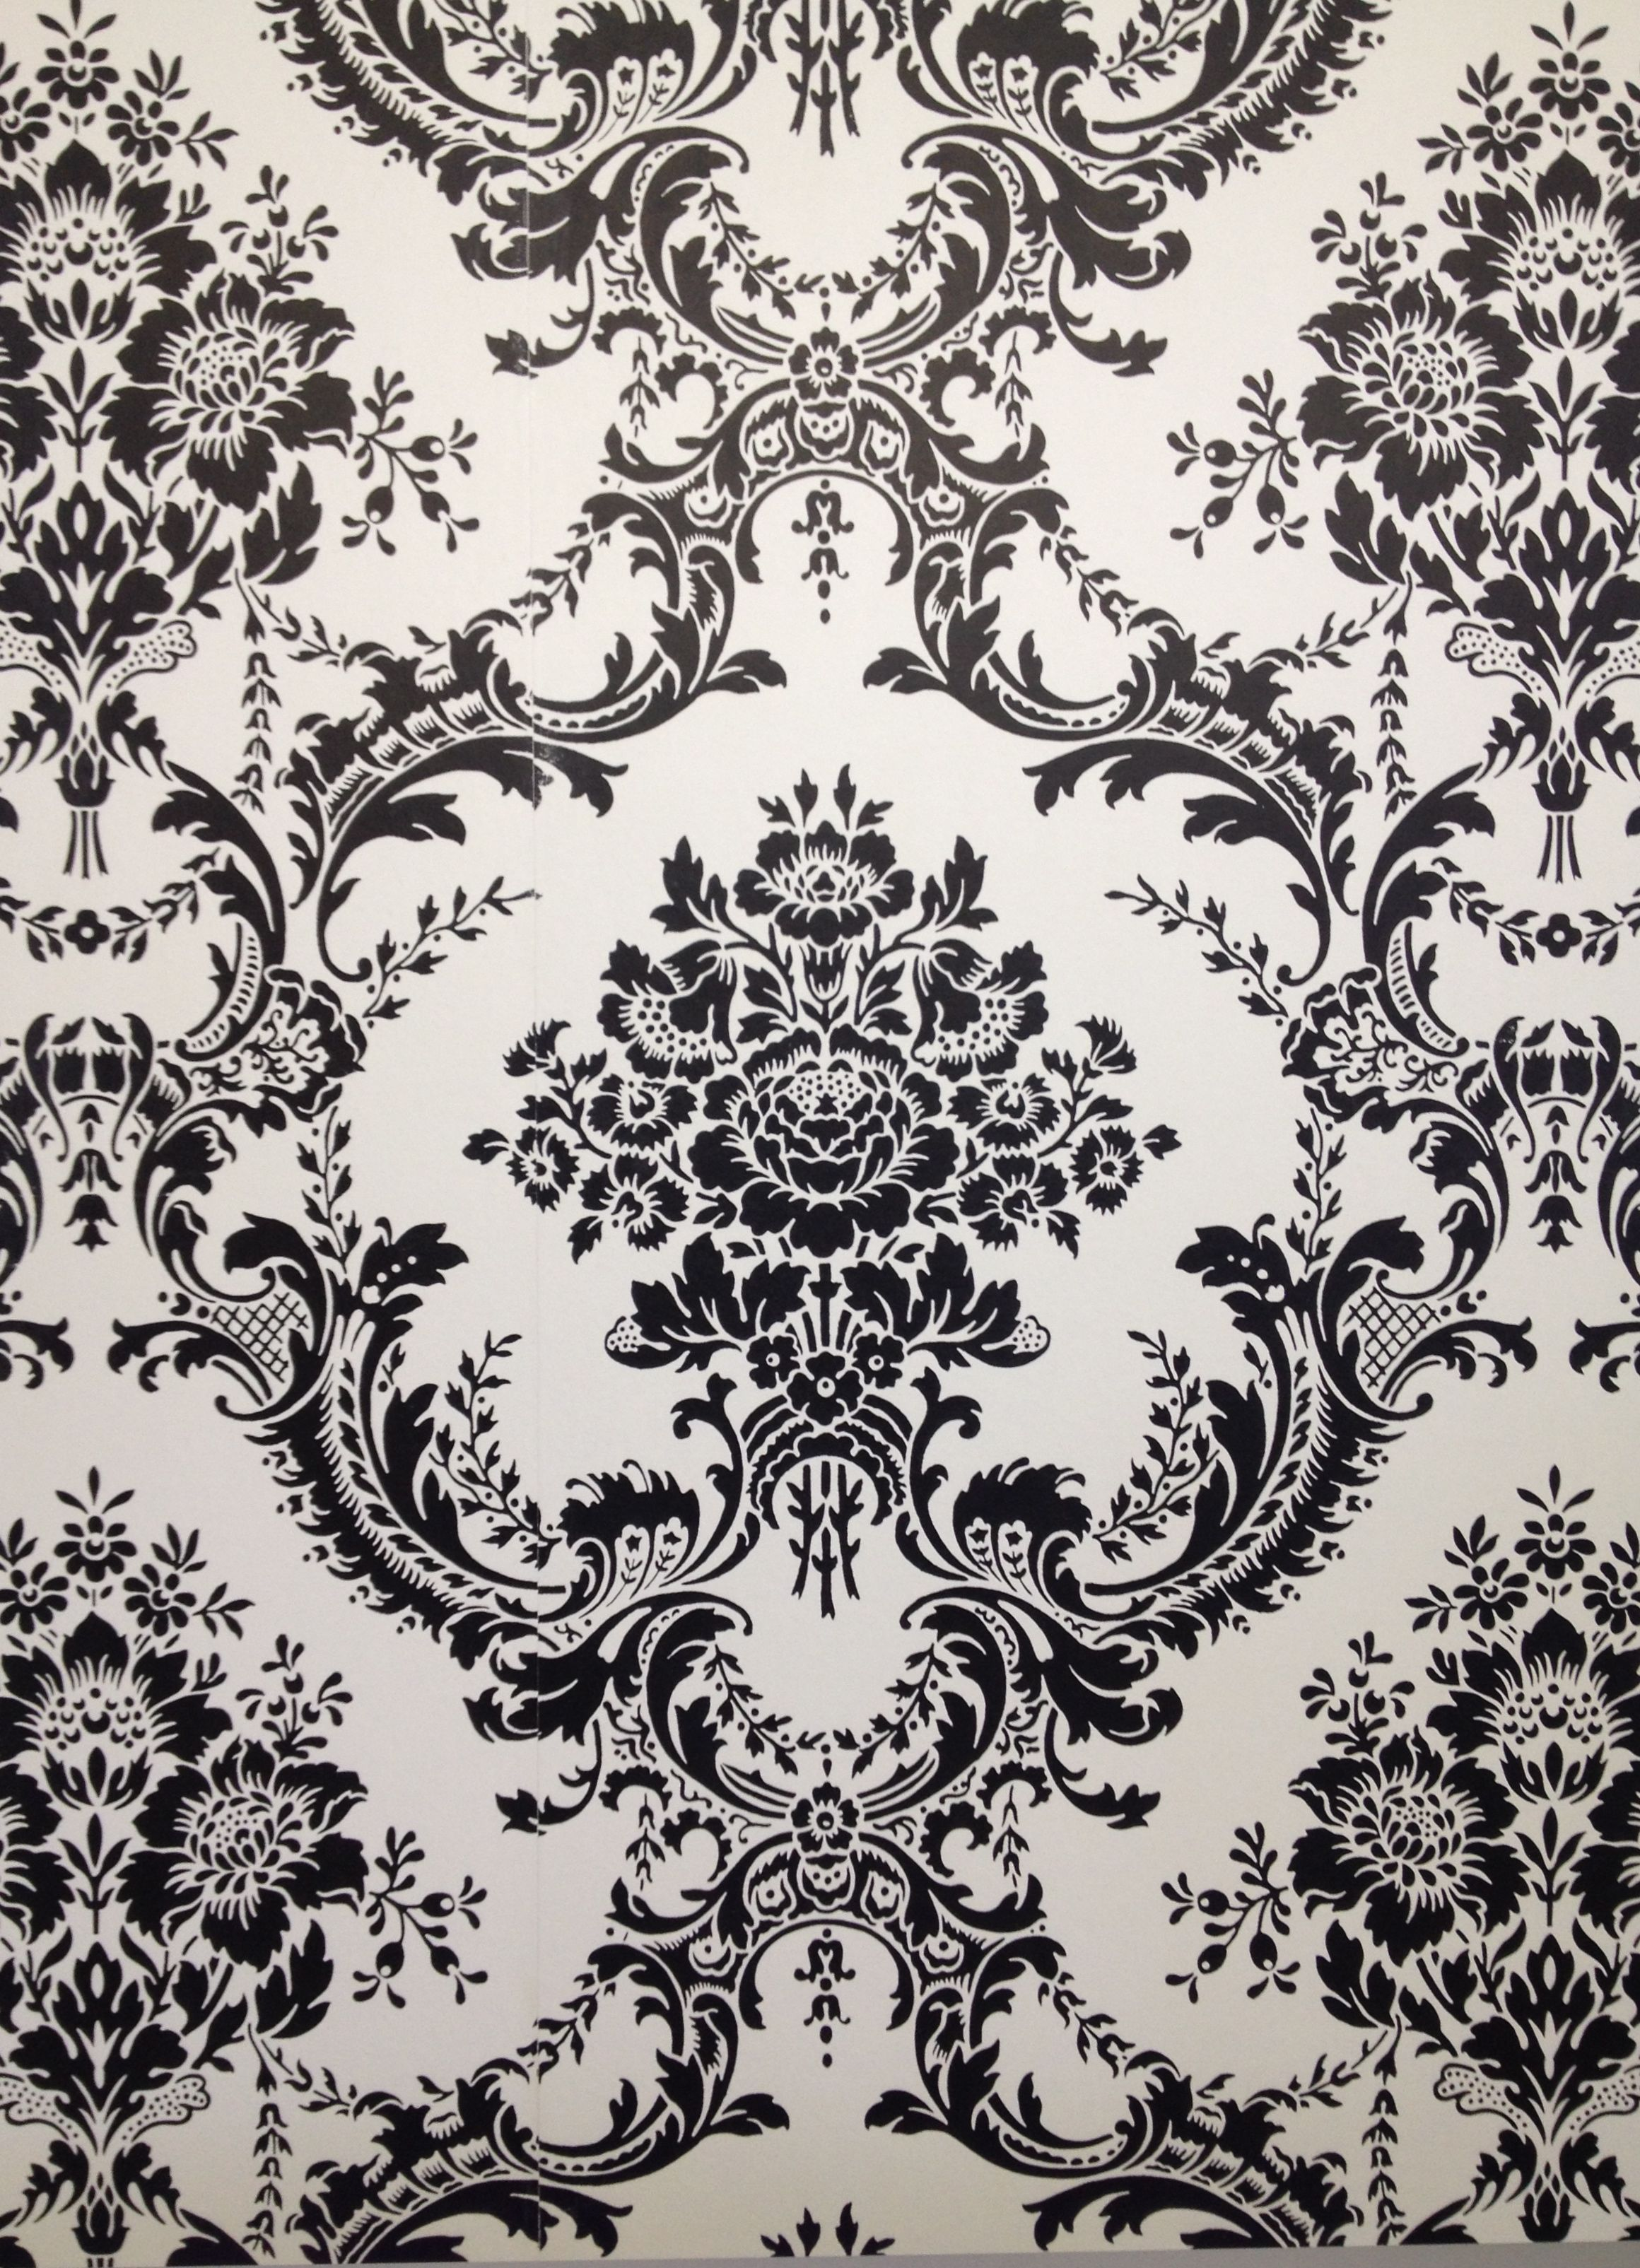 Damask wallpaper black and white. Modern and glamour. You can find it in Rona